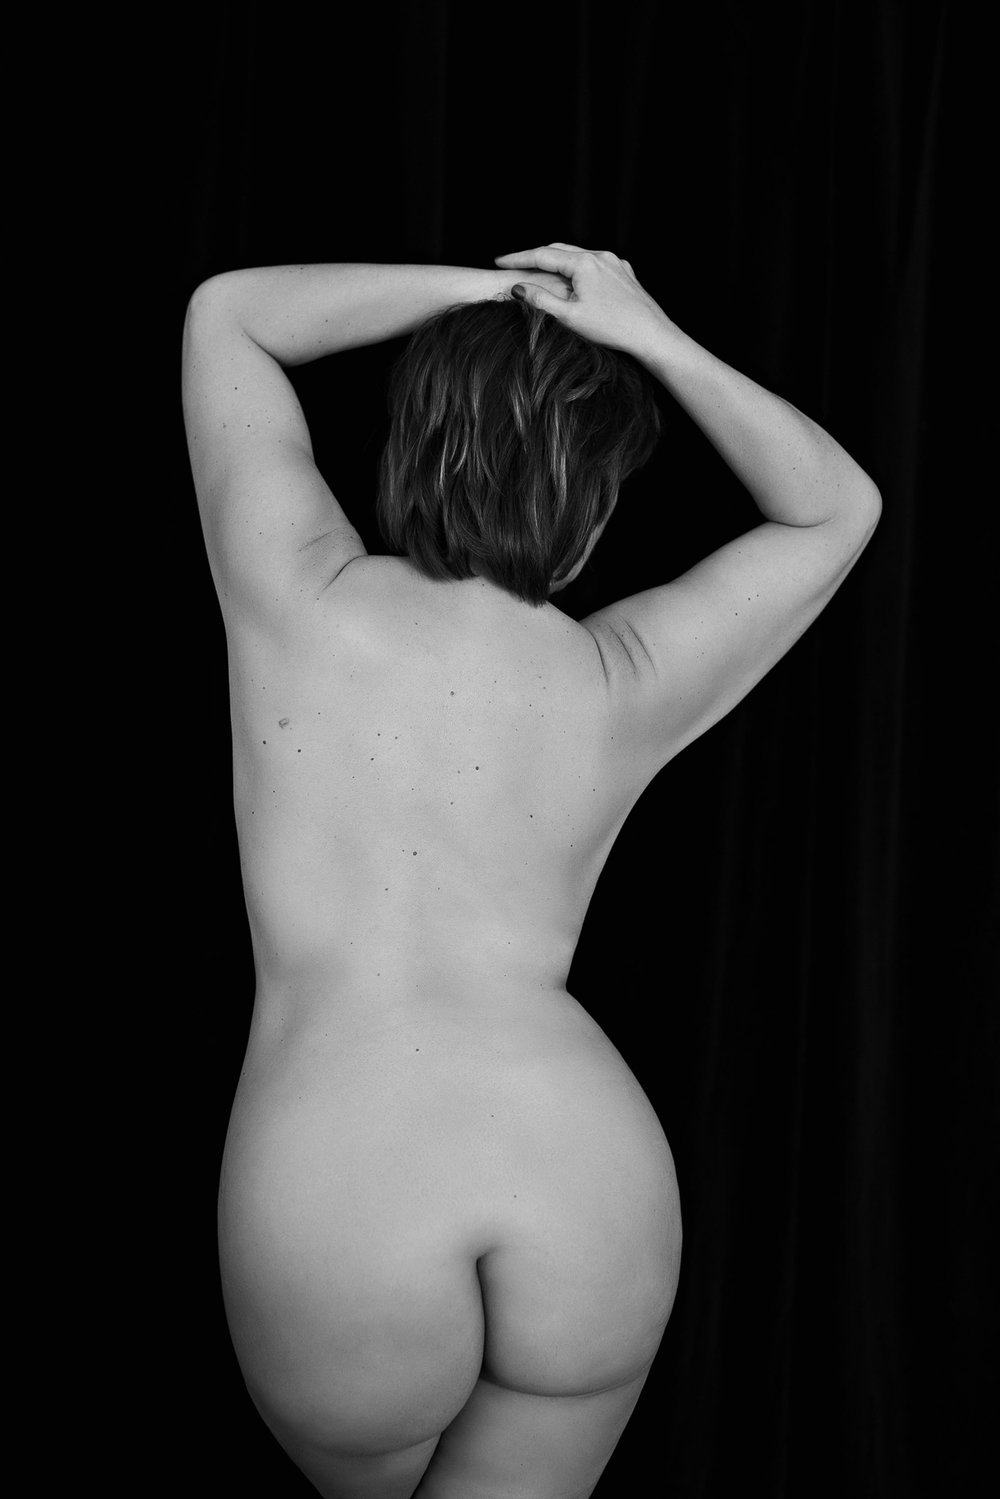 curvy woman black and white bodyscape portrait